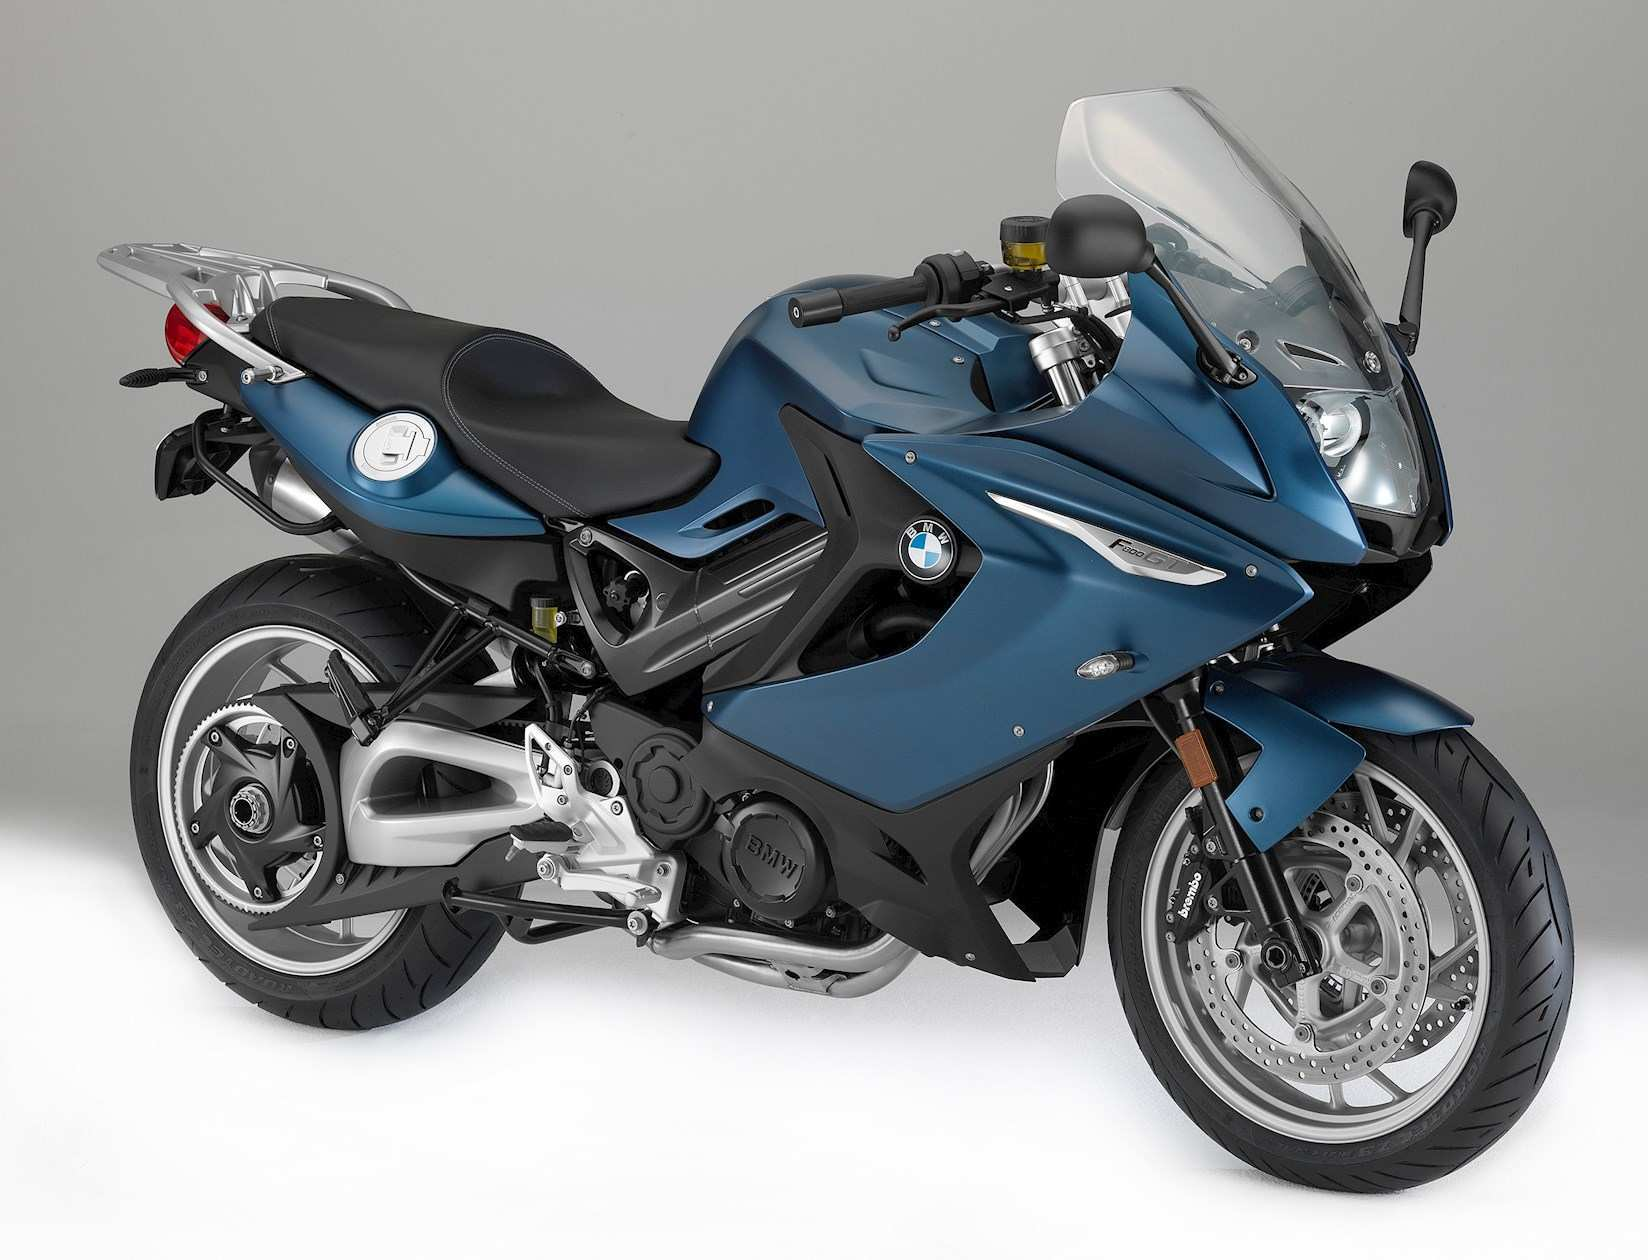 86 Gallery of Bmw F800Gt 2019 Review And Price Prices for Bmw F800Gt 2019 Review And Price